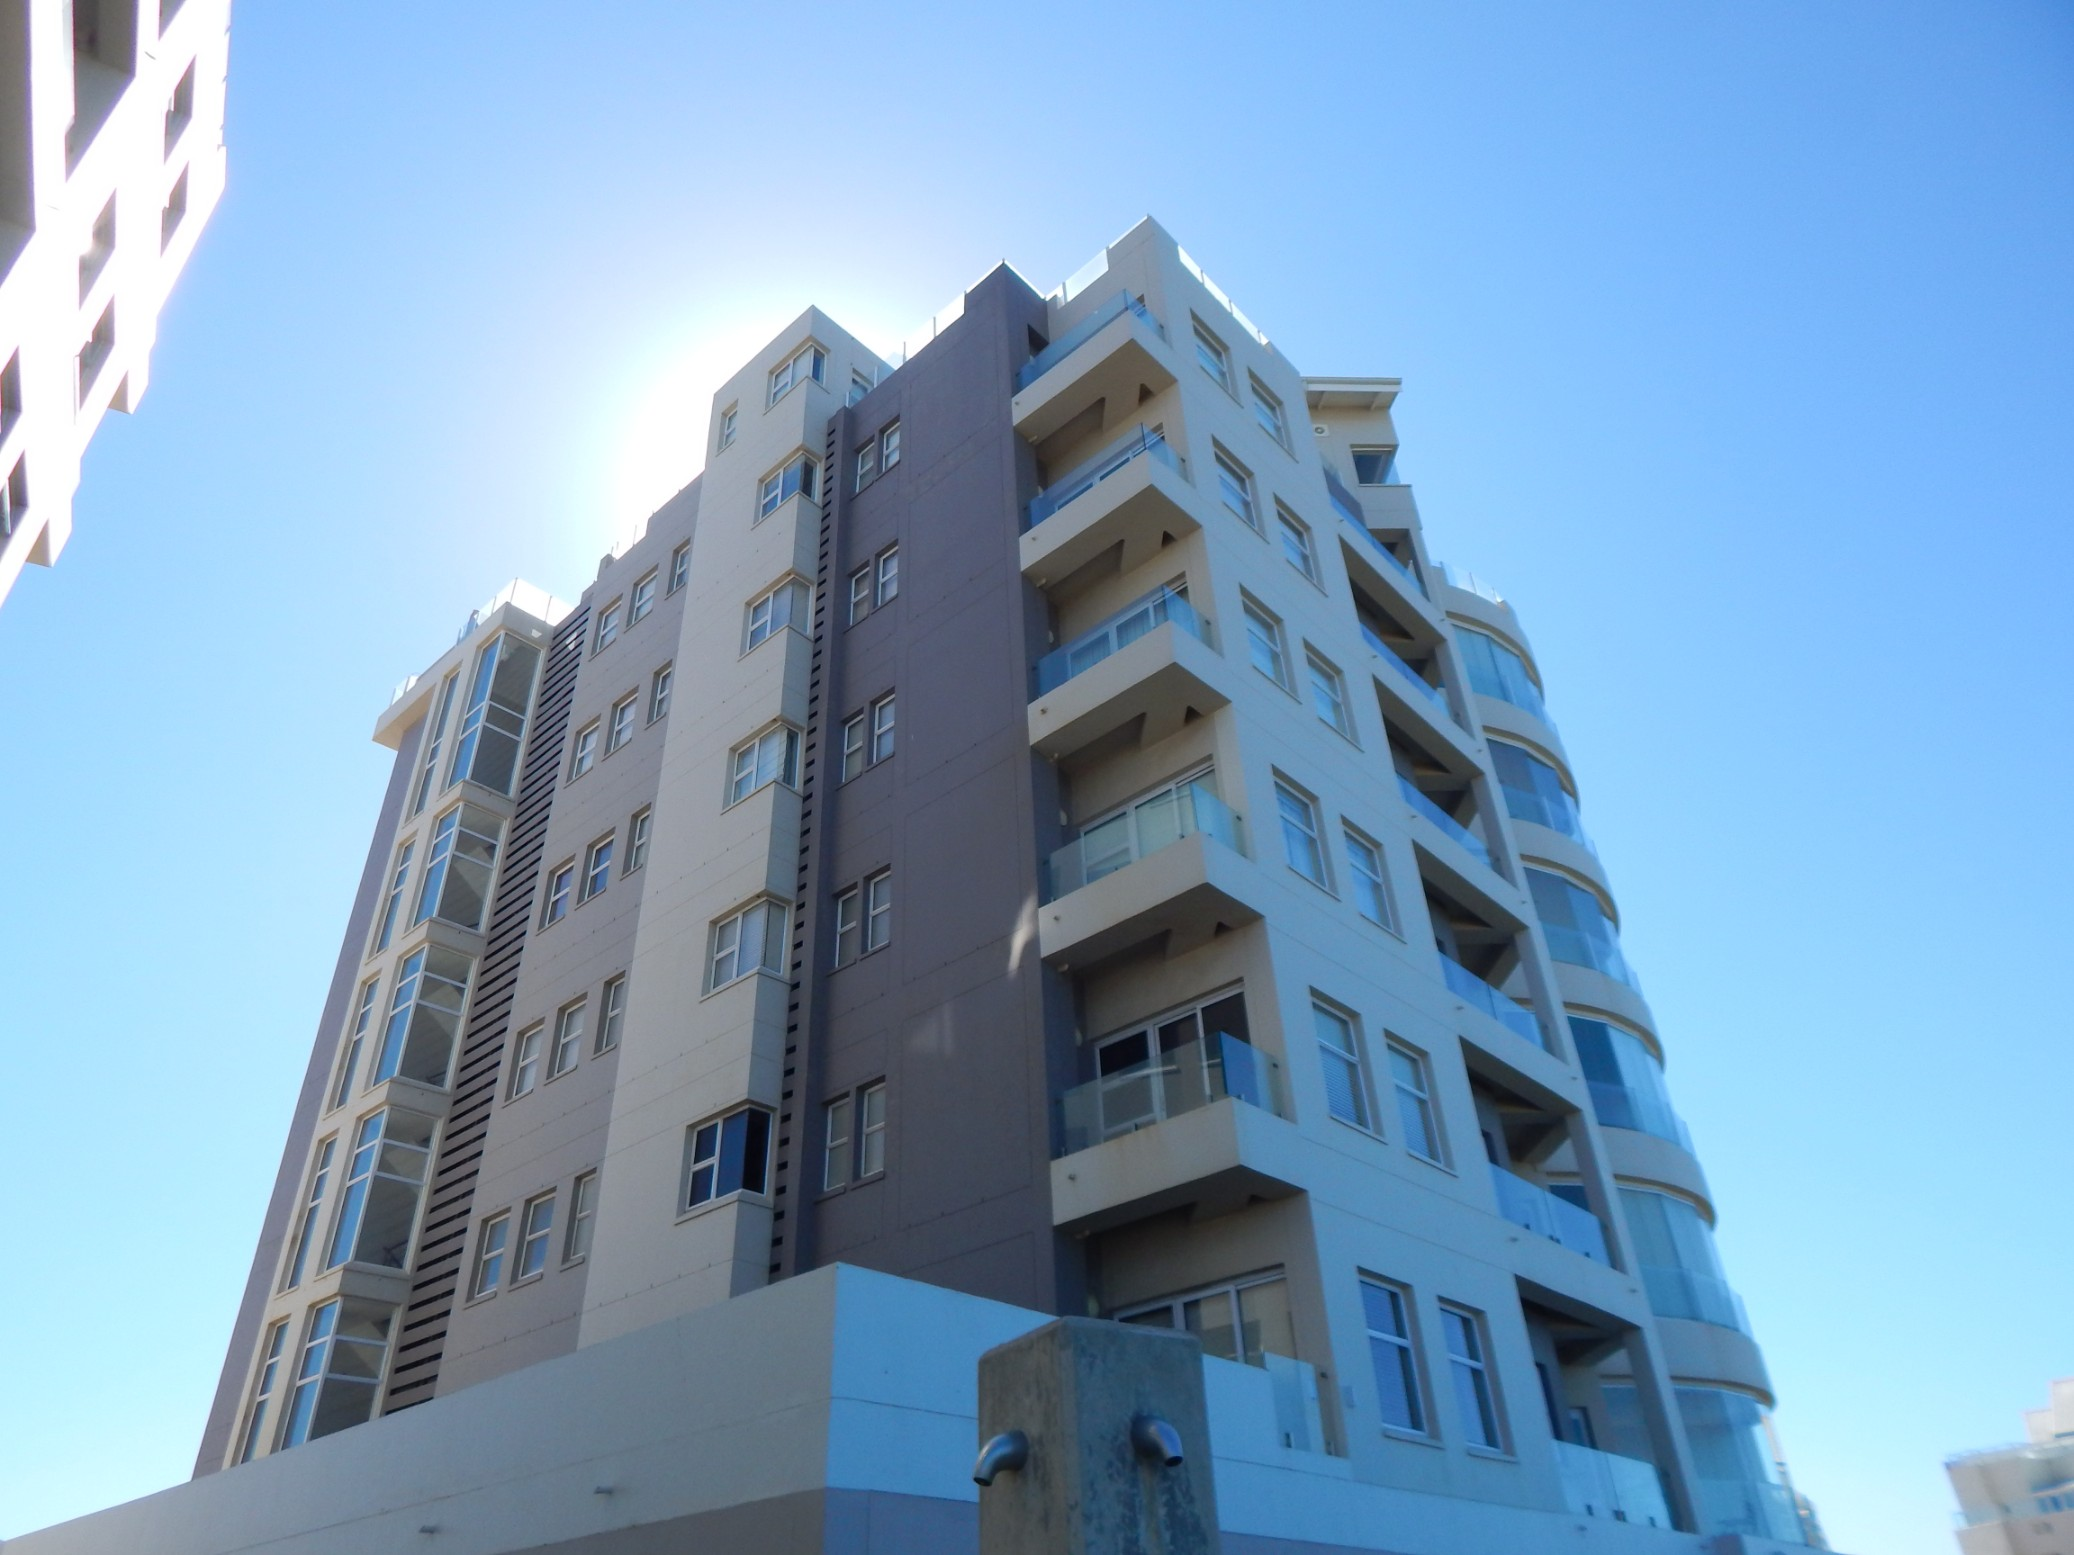 3 Bedroom Apartment for sale in Diaz Beach ENT0069020 : photo#0